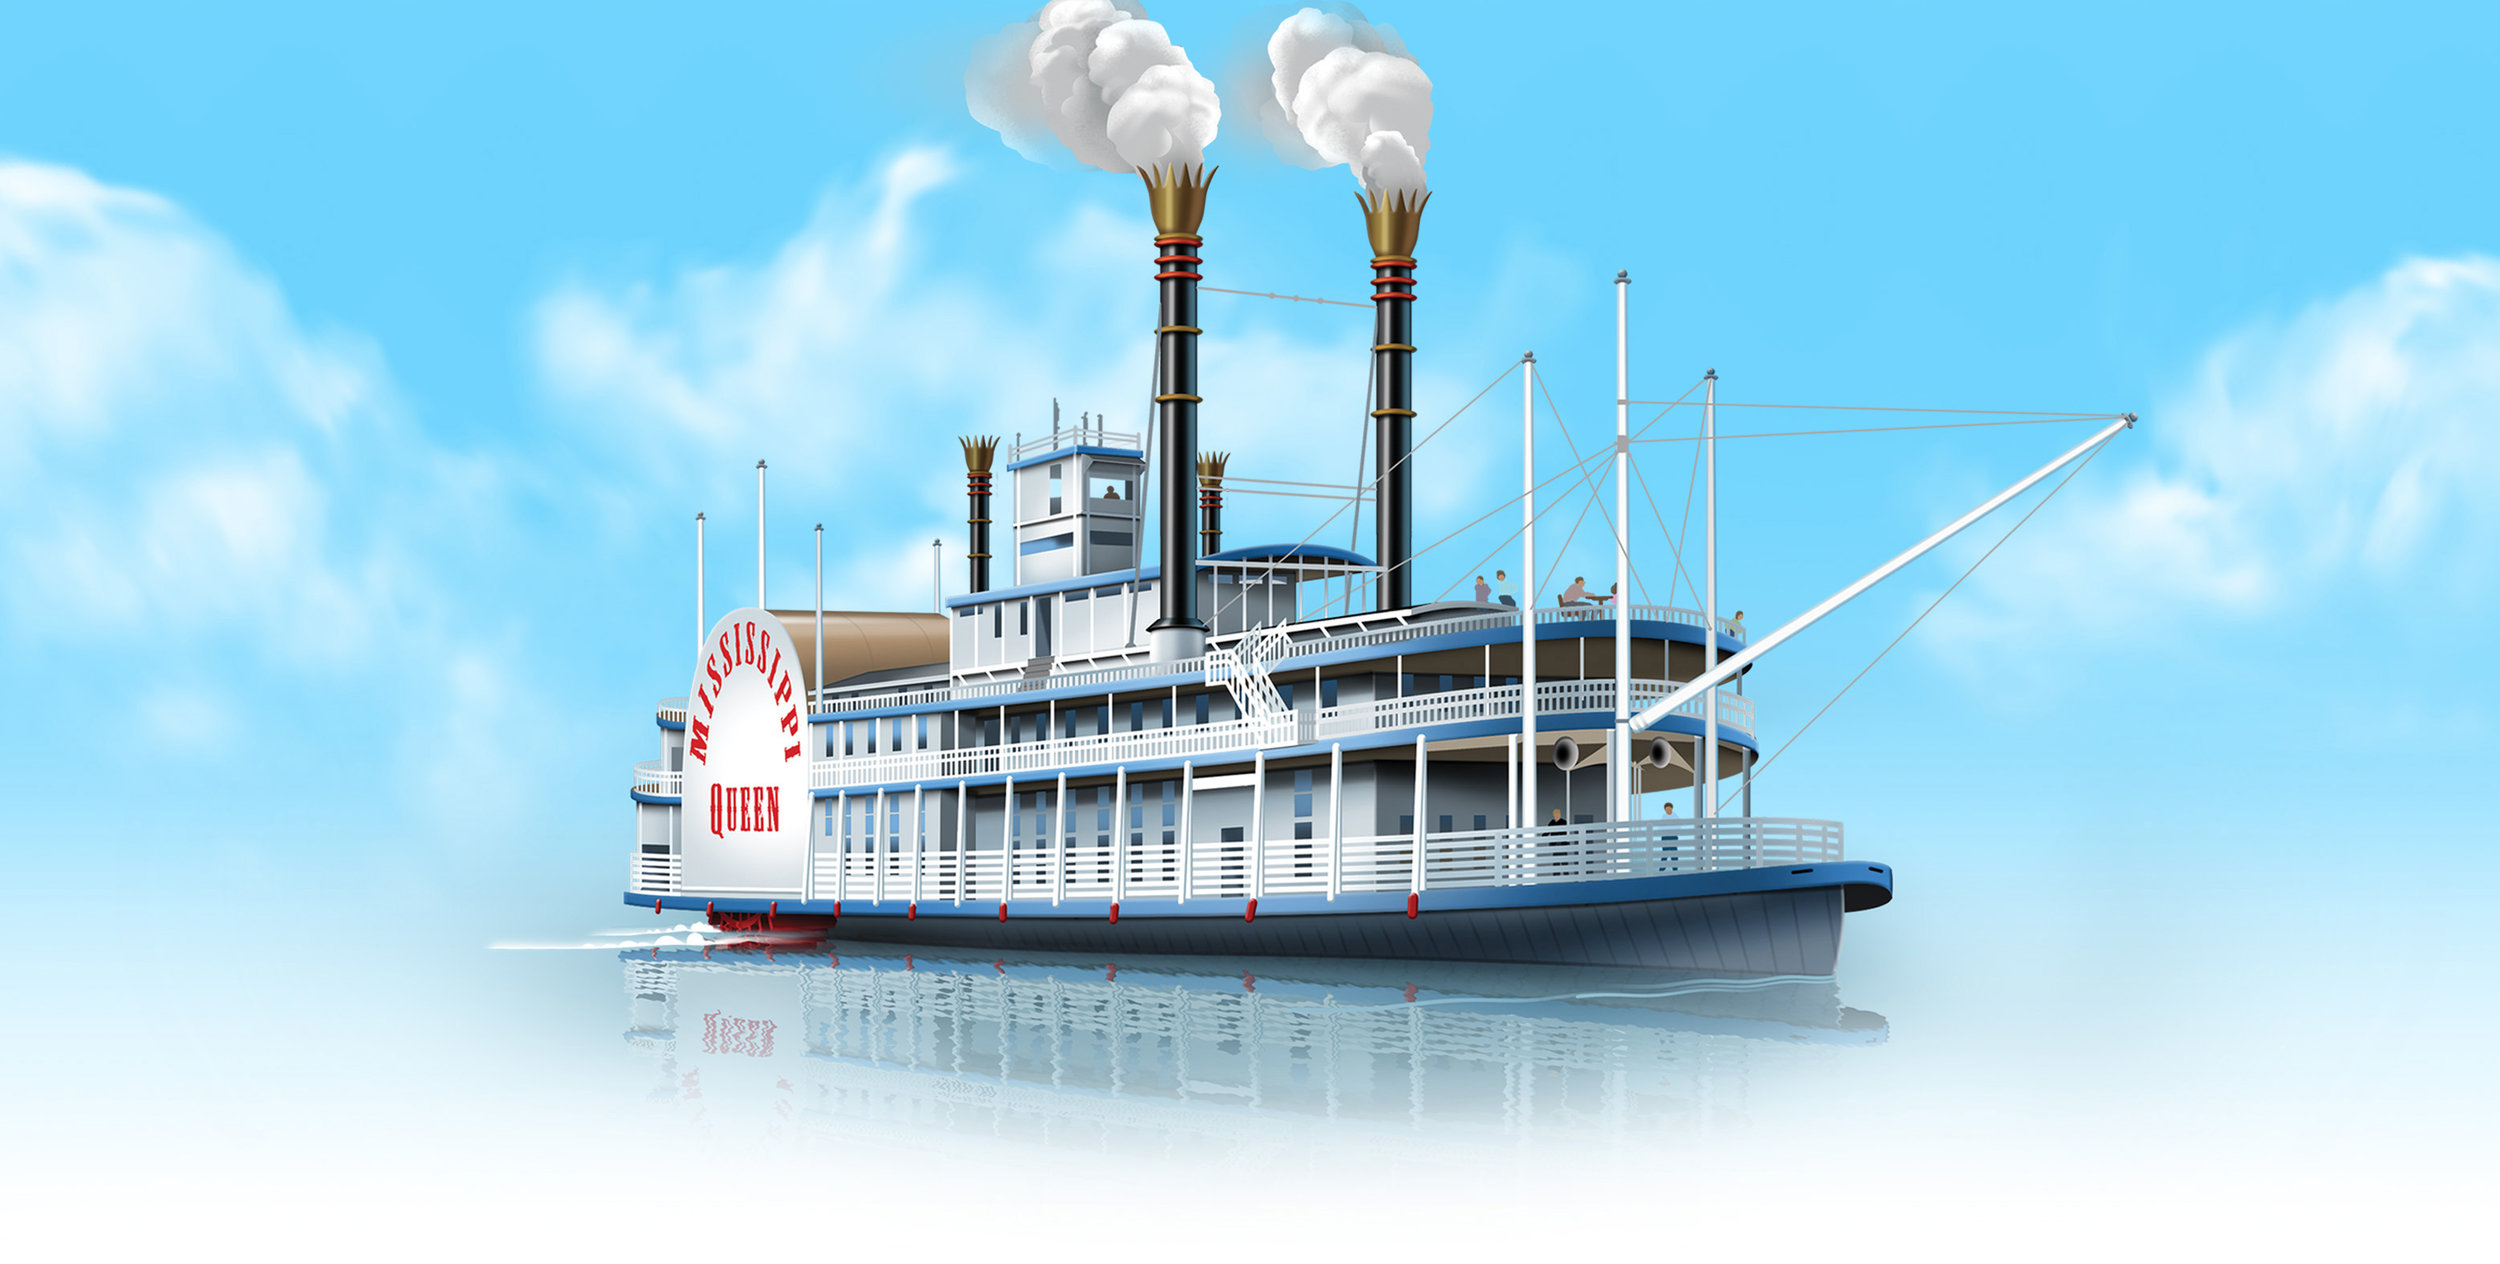 steamboat.jpg